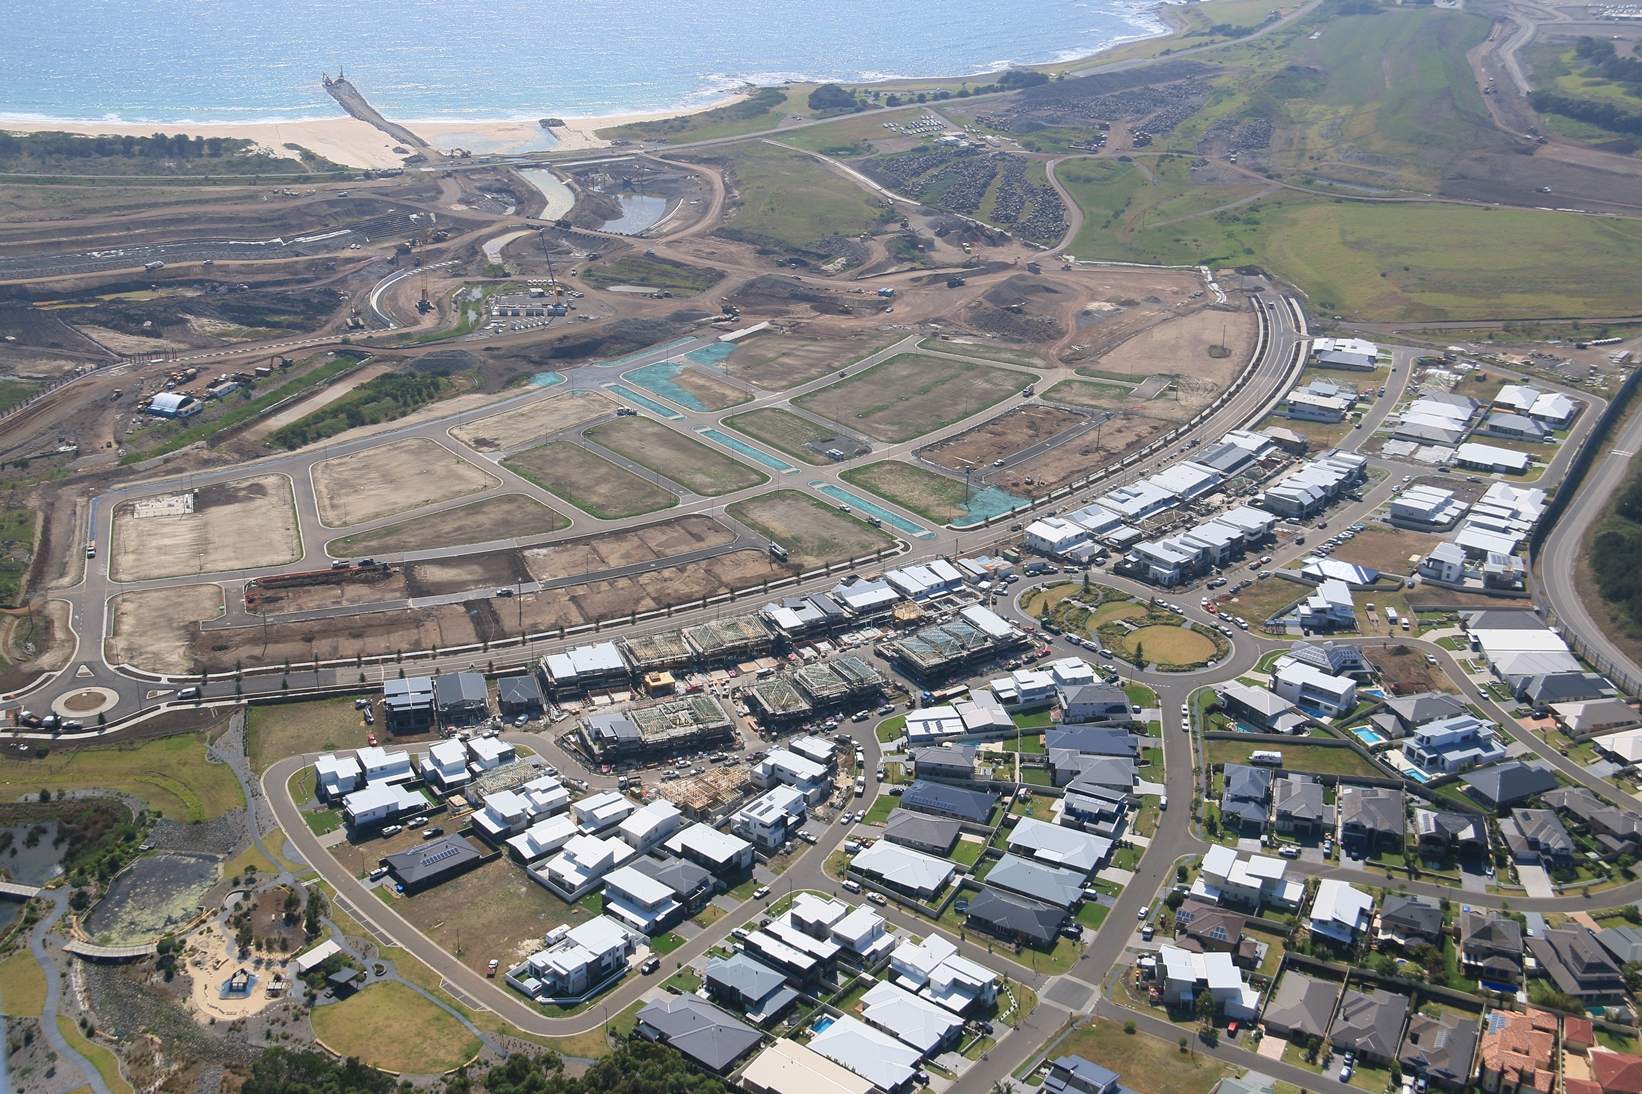 Shell Cove Aerial Images November 2016